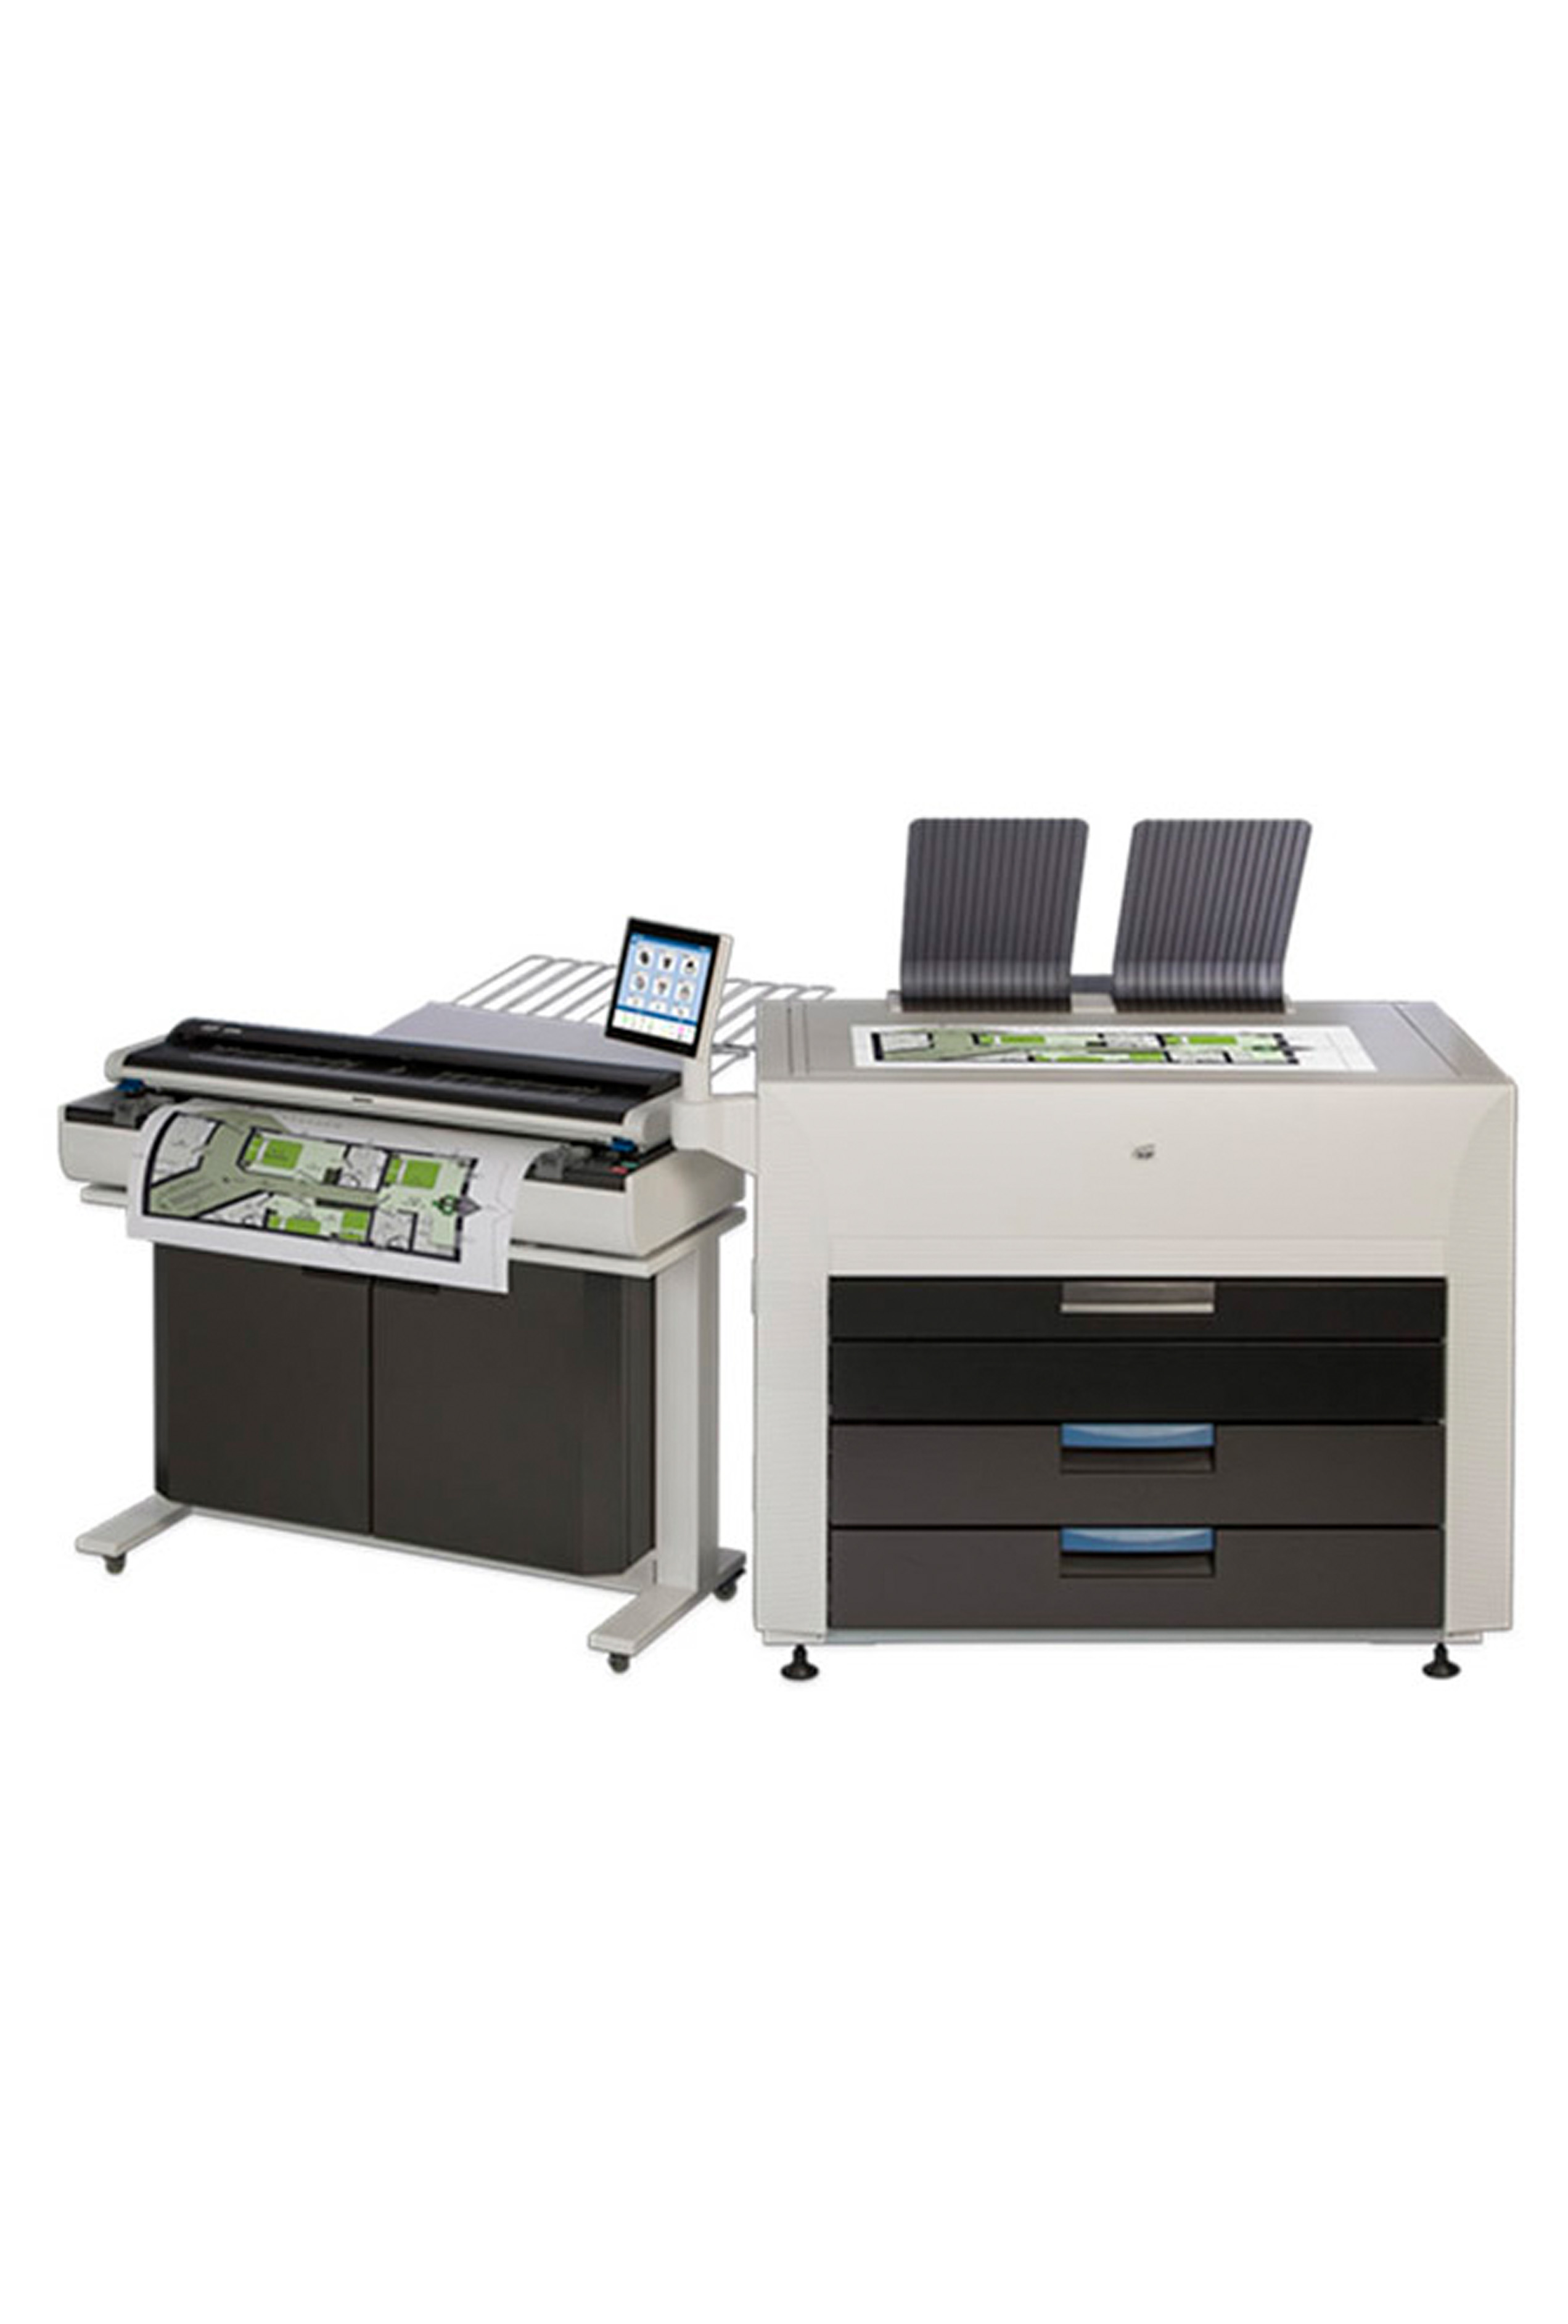 Kip 990 Color MFP System